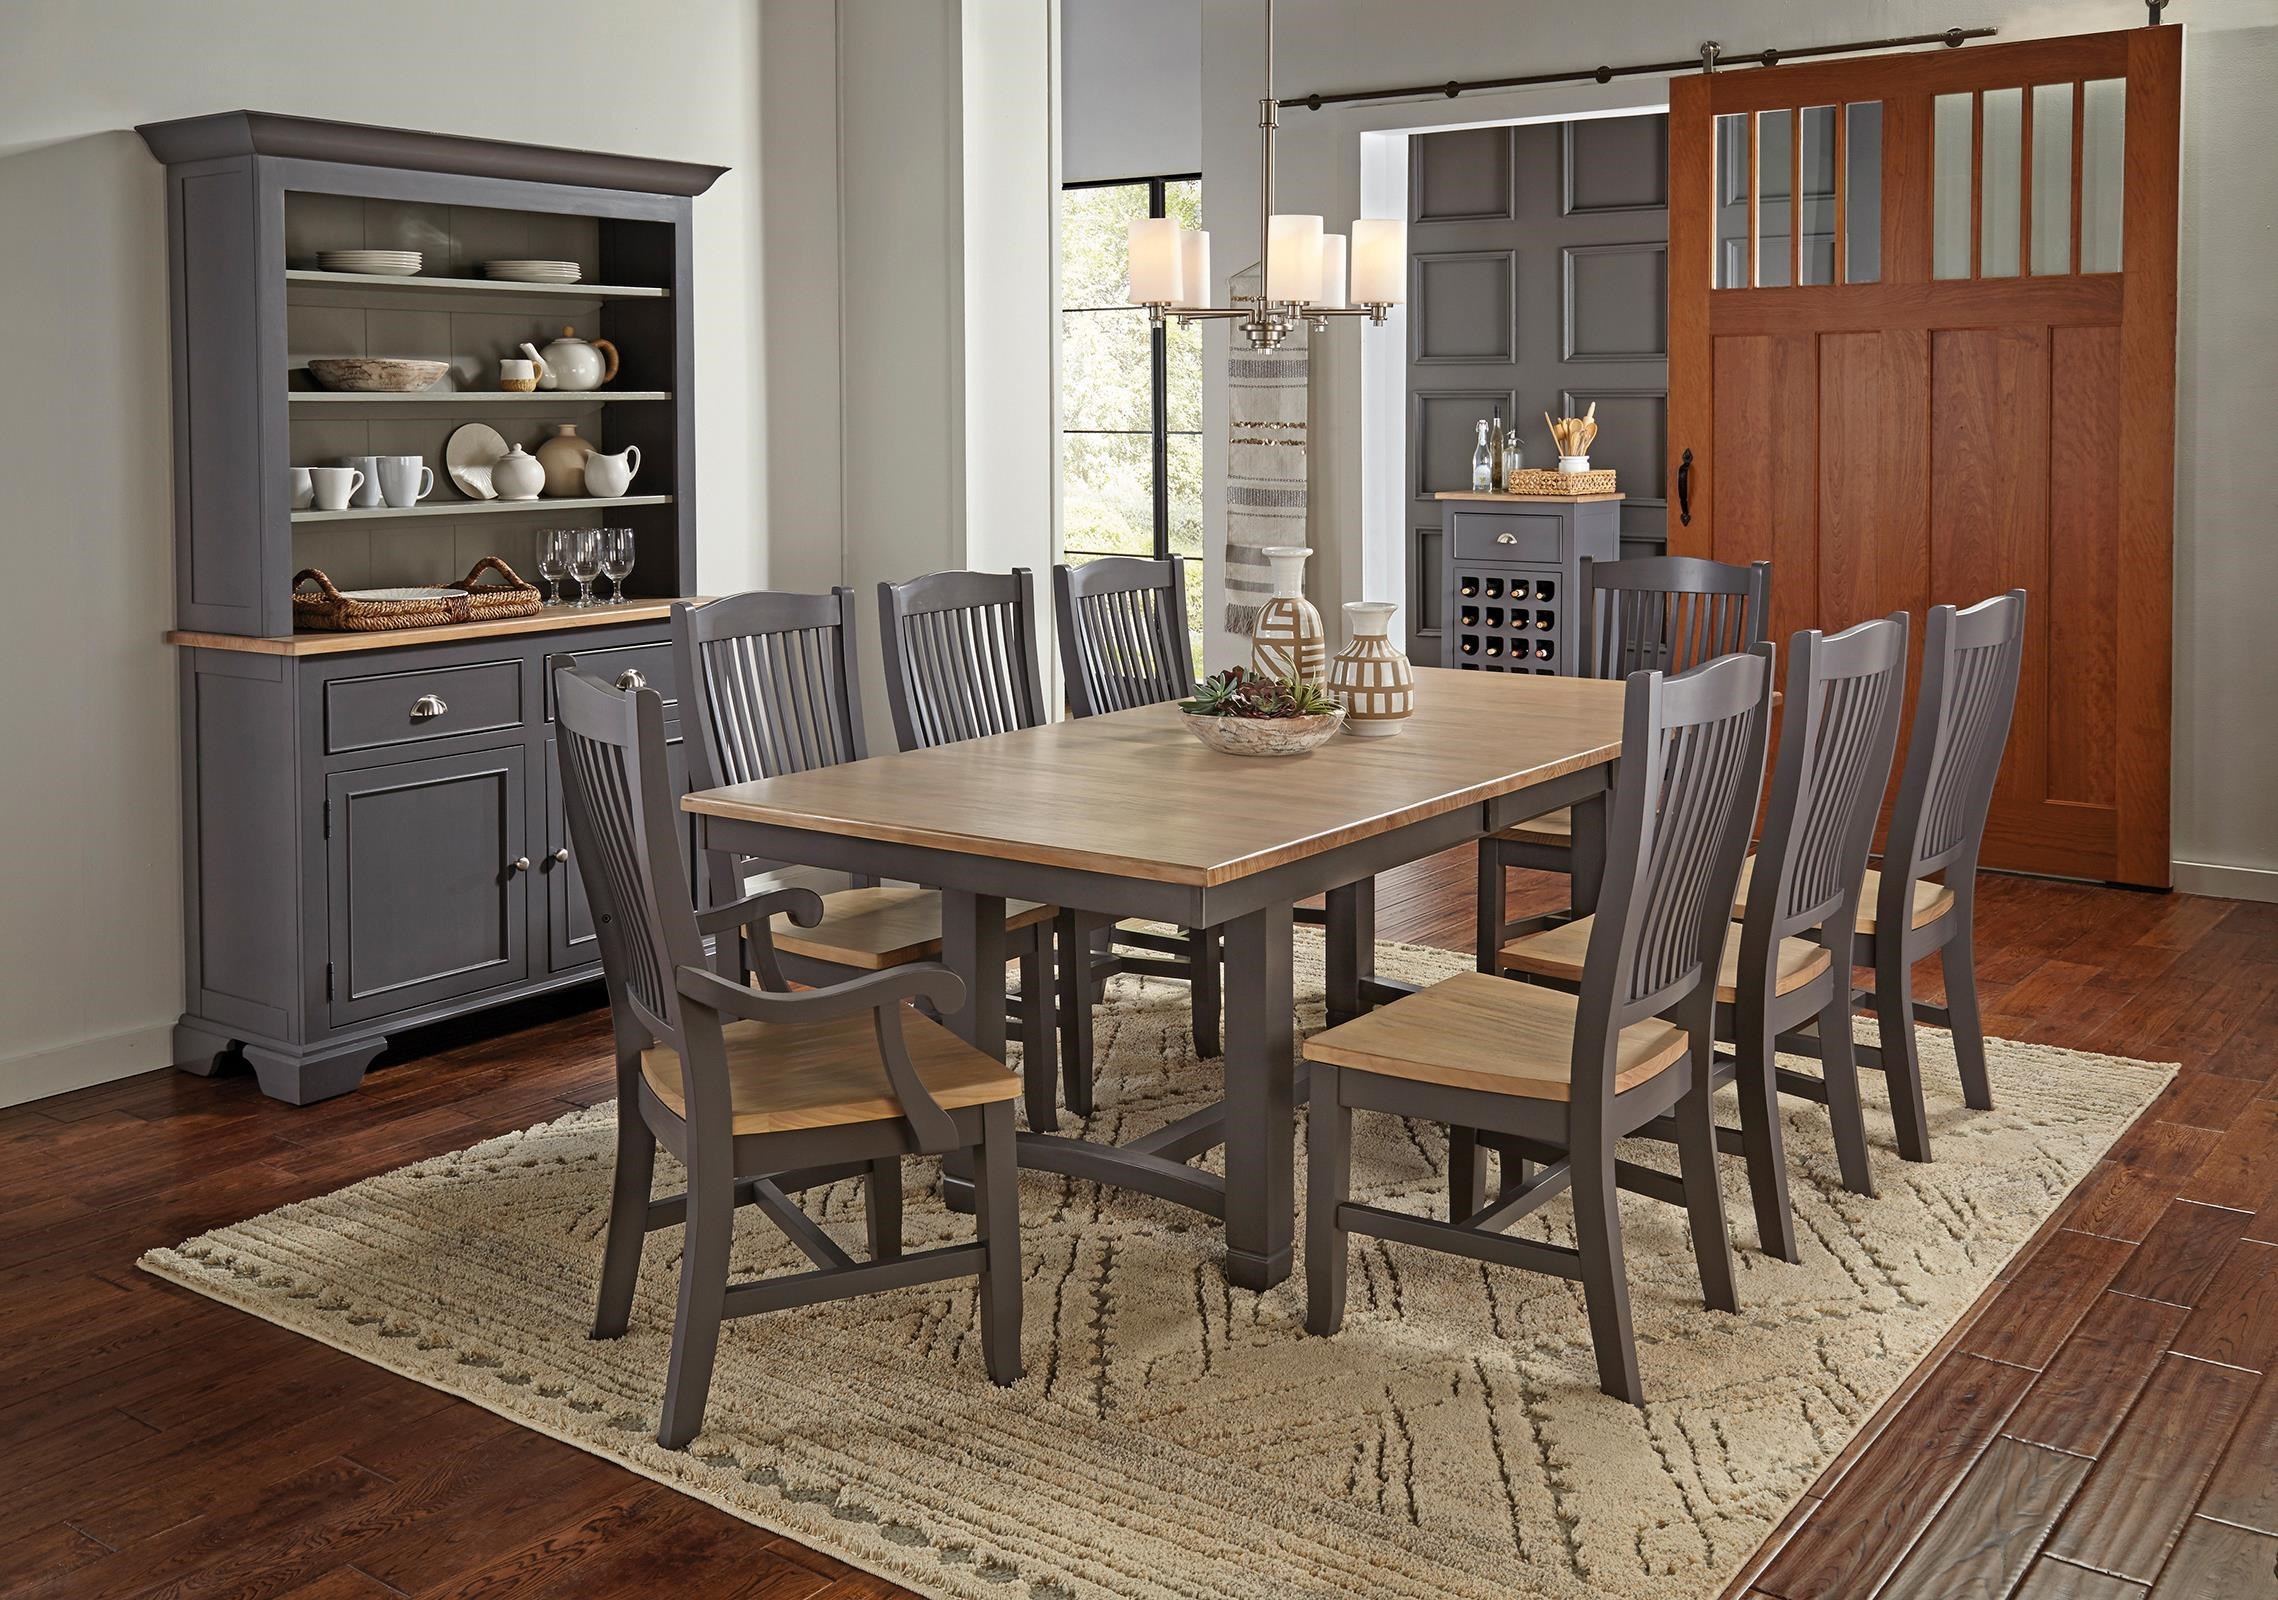 Port Townsend Trestle Table, 4 Side Chairs, 2 Arm Chair by AAmerica at Johnny Janosik